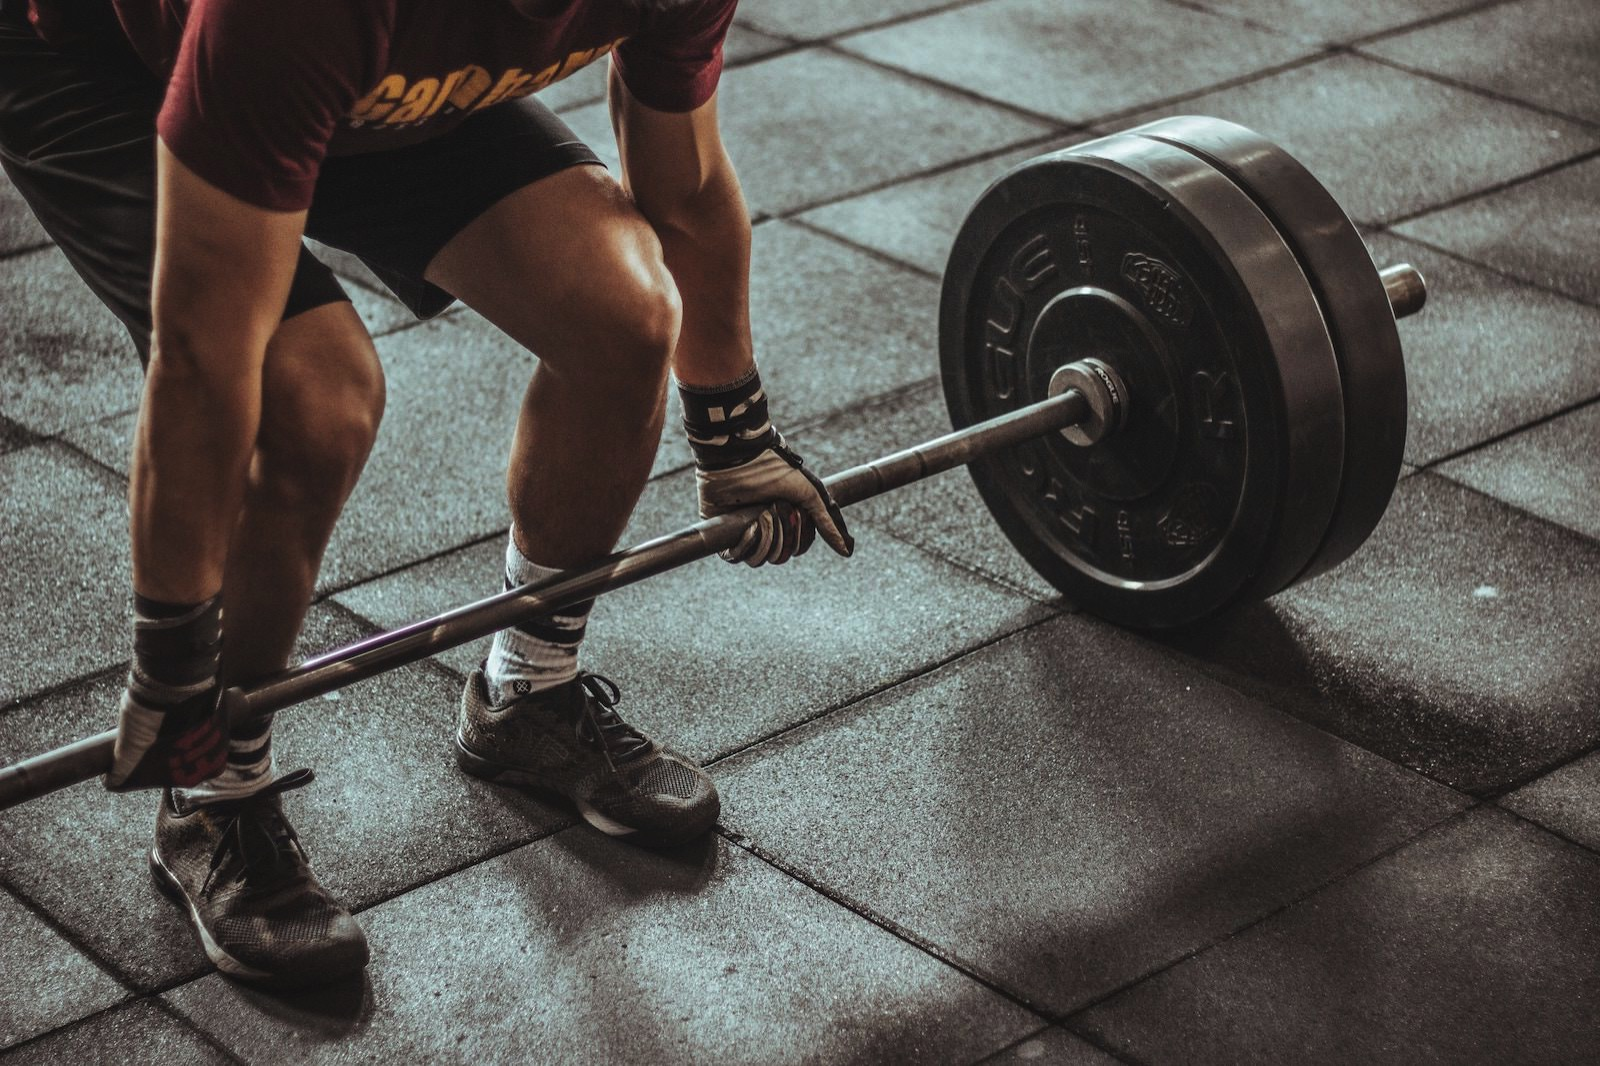 Victor freitas 604835 unsplash deadlift